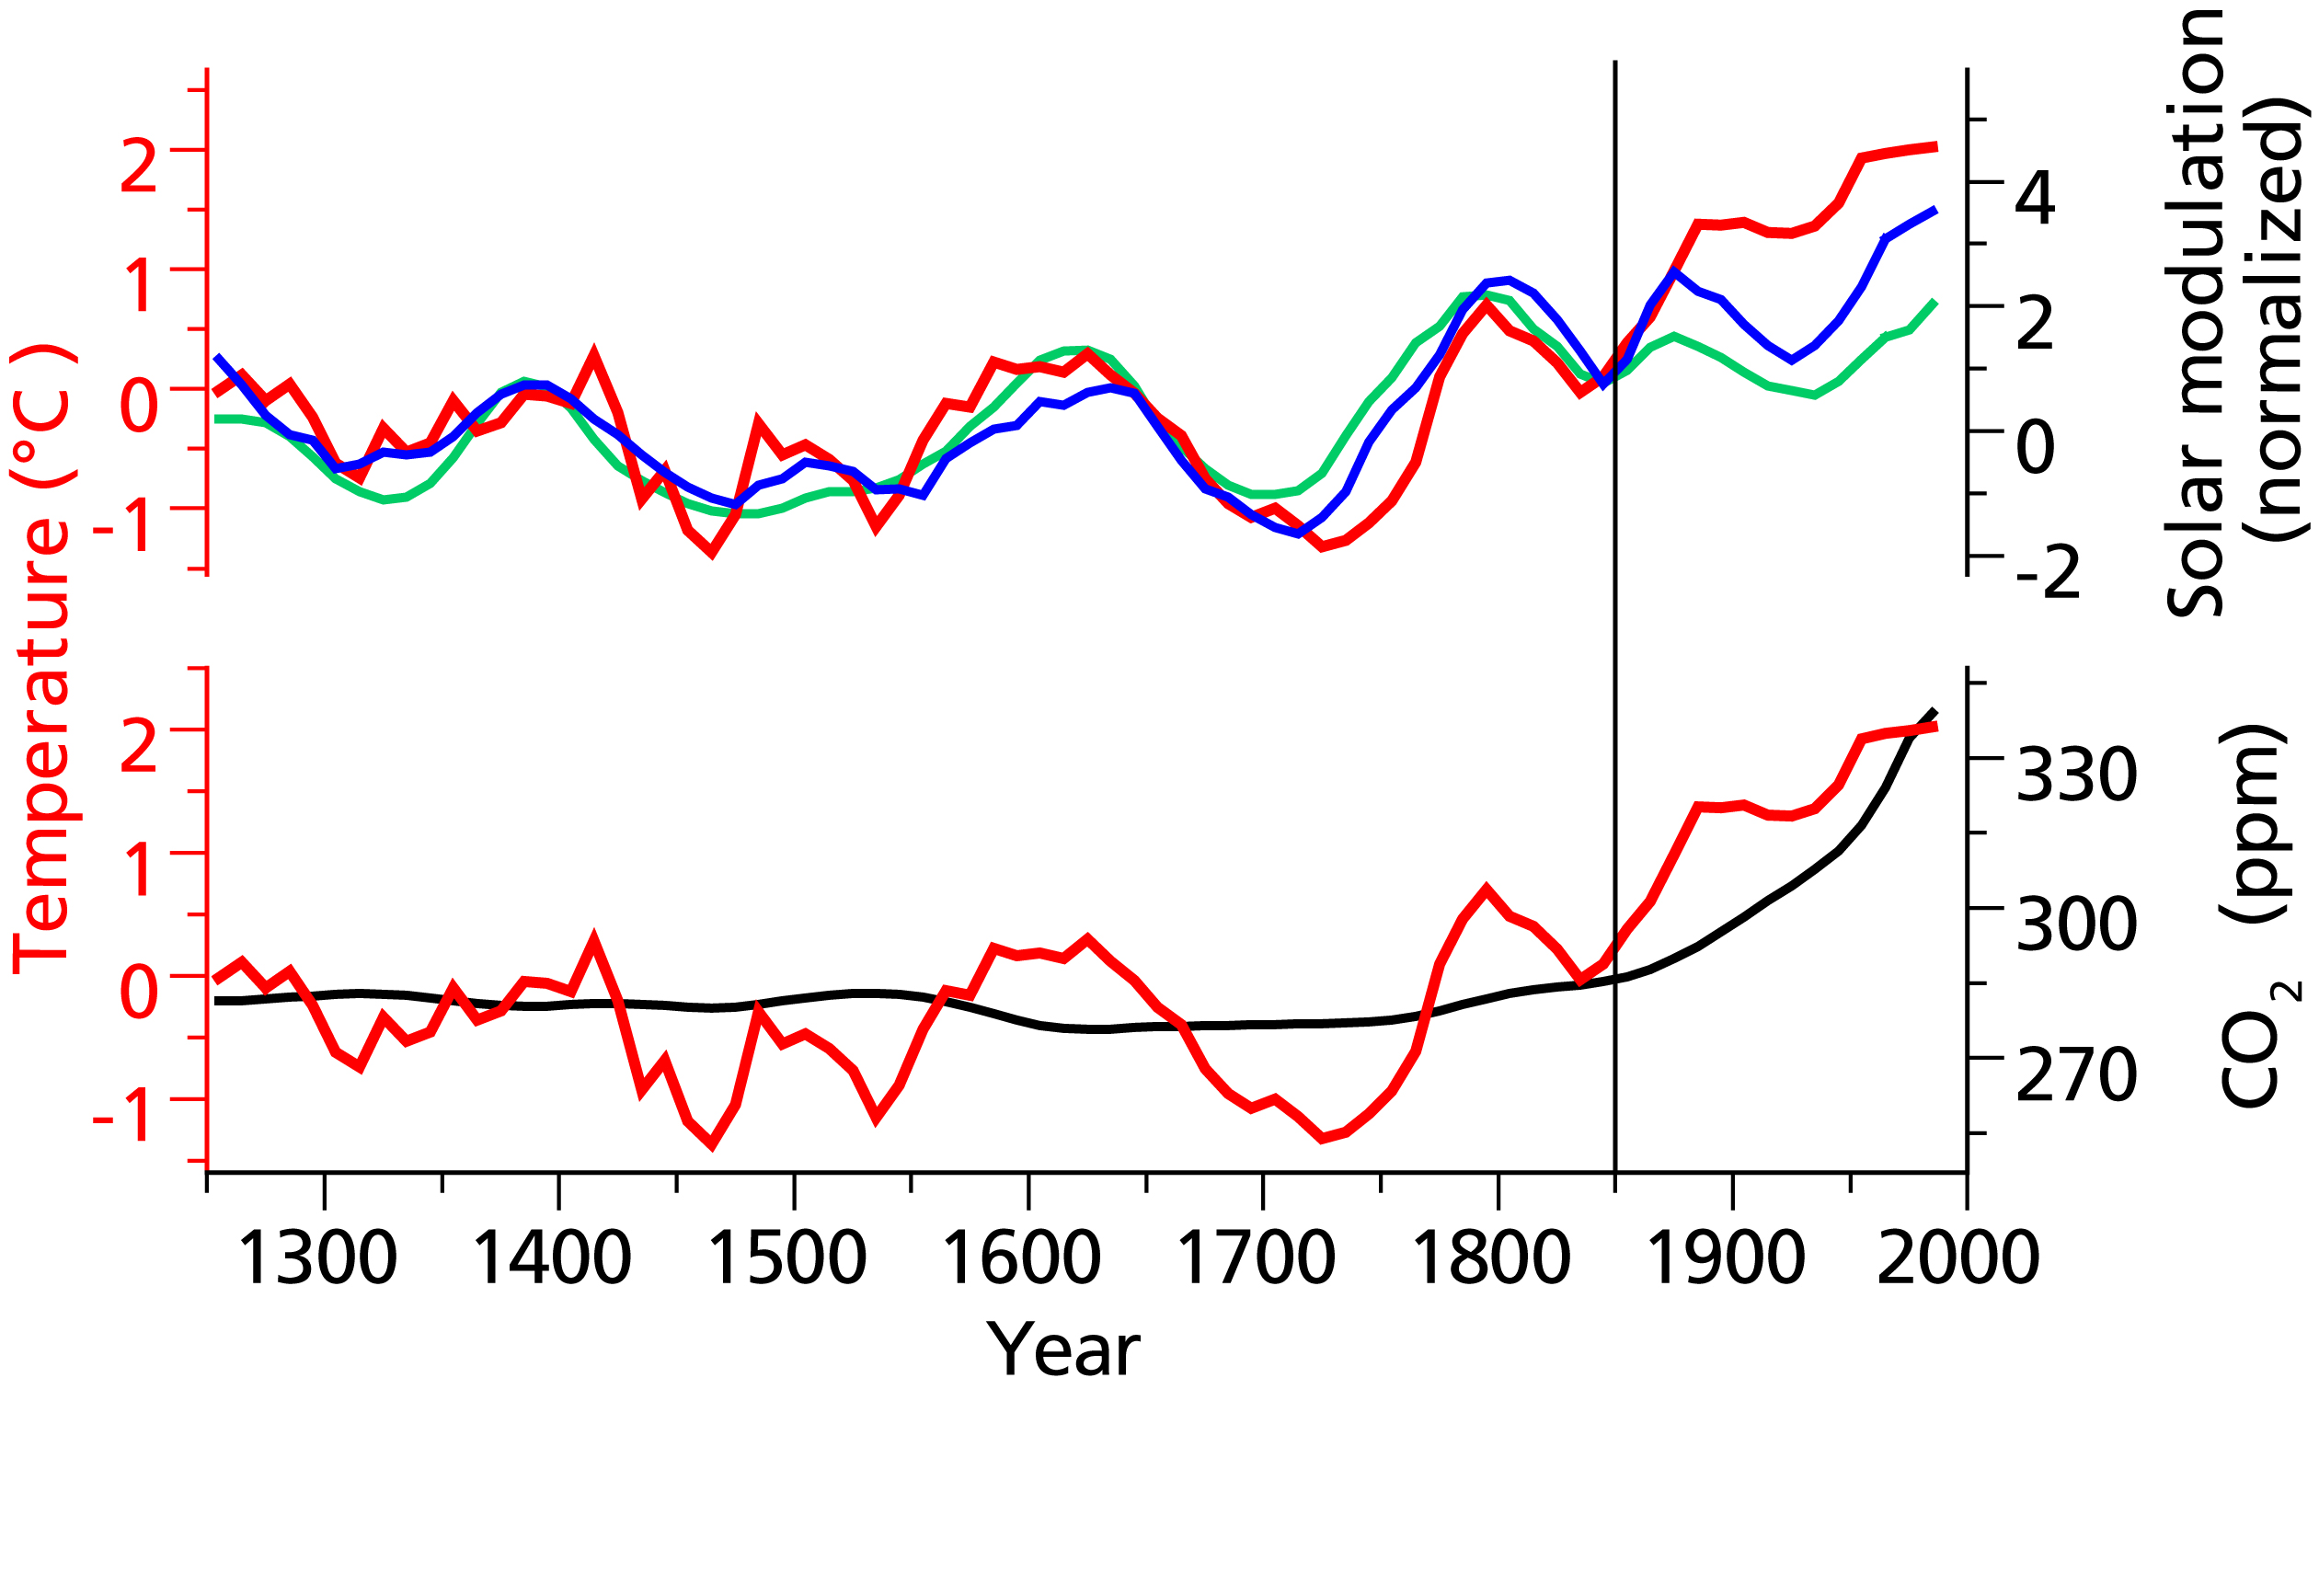 Comparison of the reconstructed temperatures in the Altai (deviation from mean), derived from the oxygen isotopes in the ice core (red) with solar modulation as a measure for solar activity from measurements of <sup>10</sup>Be in polar ice cores (blue) and <sup>14</sup>C in tree rings (green). Atmospheric CO<sub>2</sub> concentrations are also shown (black). The solar modulation records are shifted by 20 years (average value of temperature delay from solar forcing). All the graphs show smoothed 10-year average values. The vertical line divides the pre-industrial era (1250-1850) from the last 150 years.